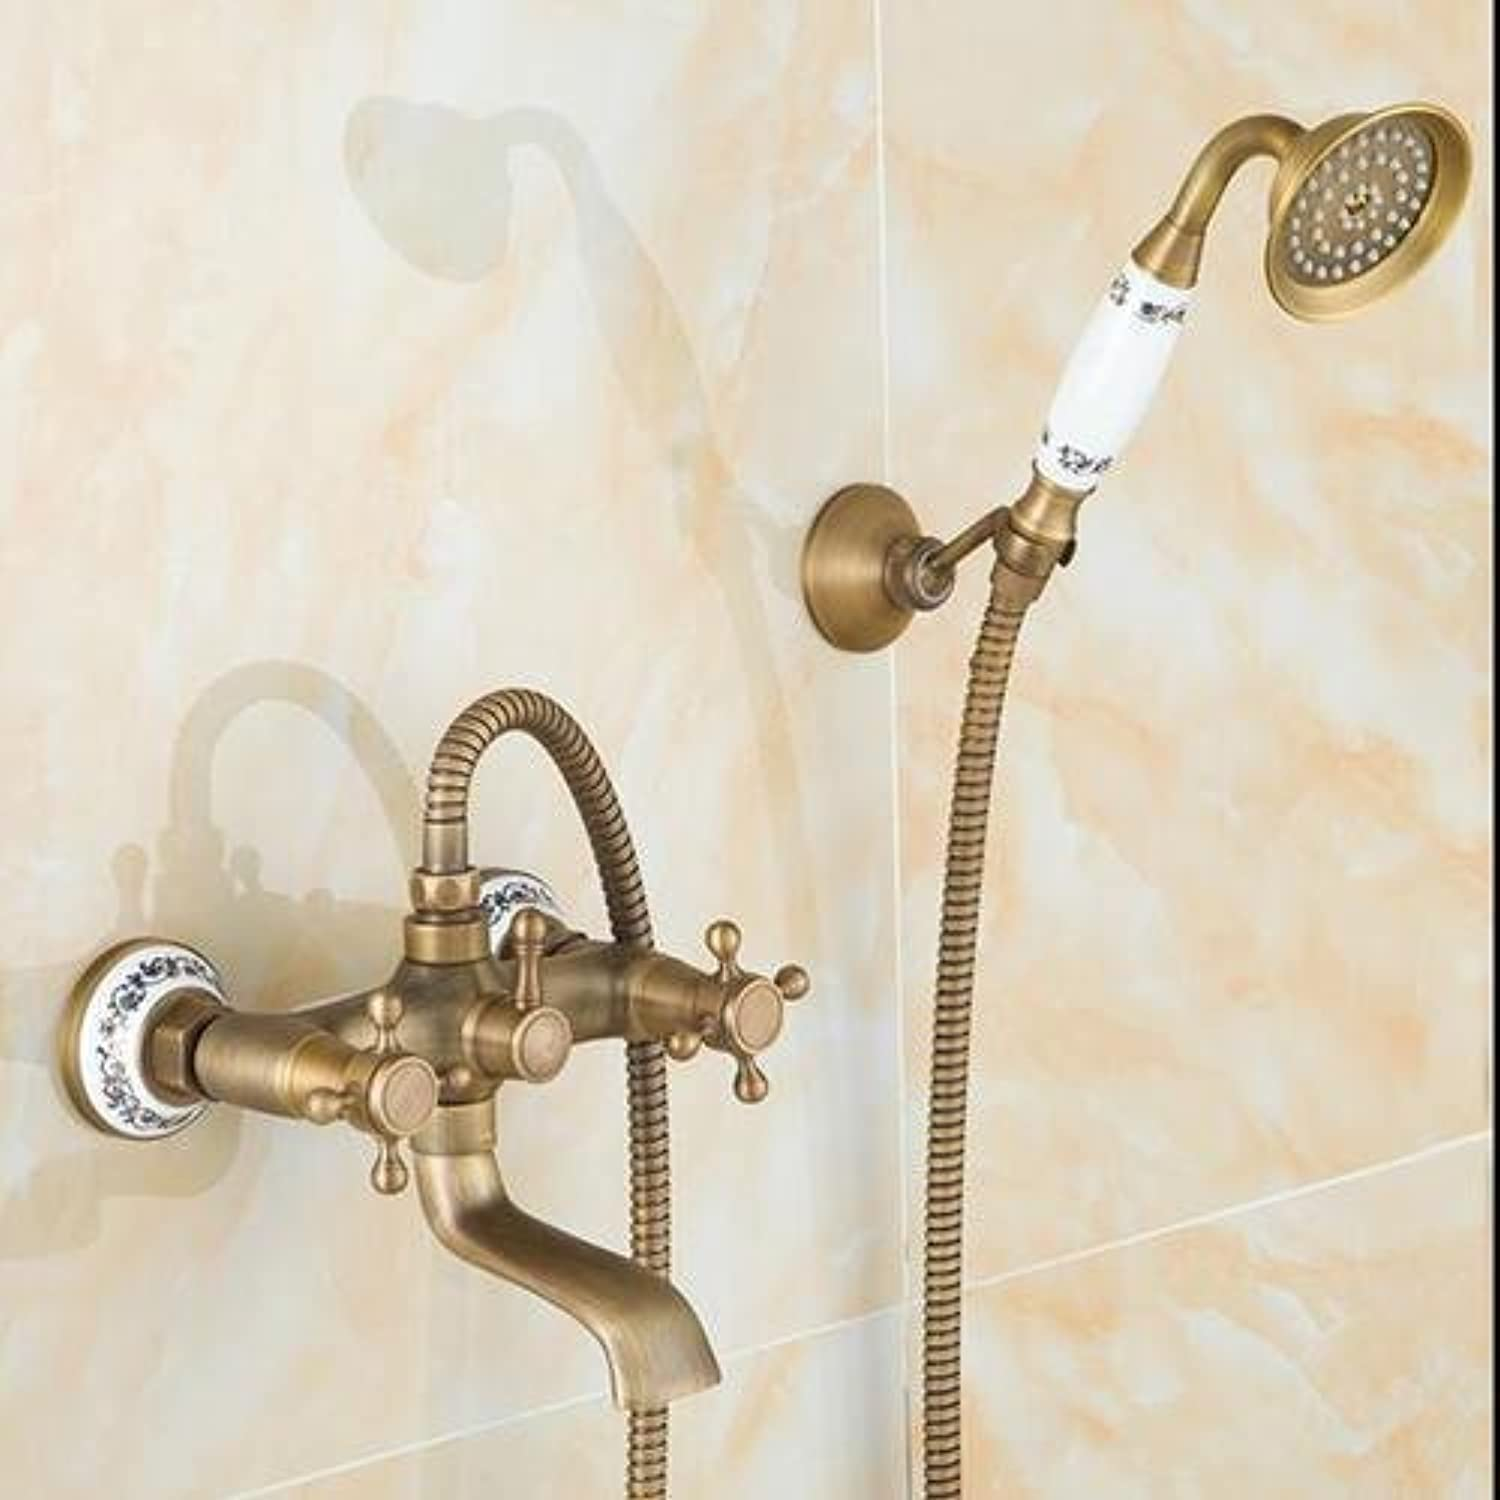 To The Wall Glass Fitting Glass Shower with Hand Shower Antique Bronze Resign Assemblies